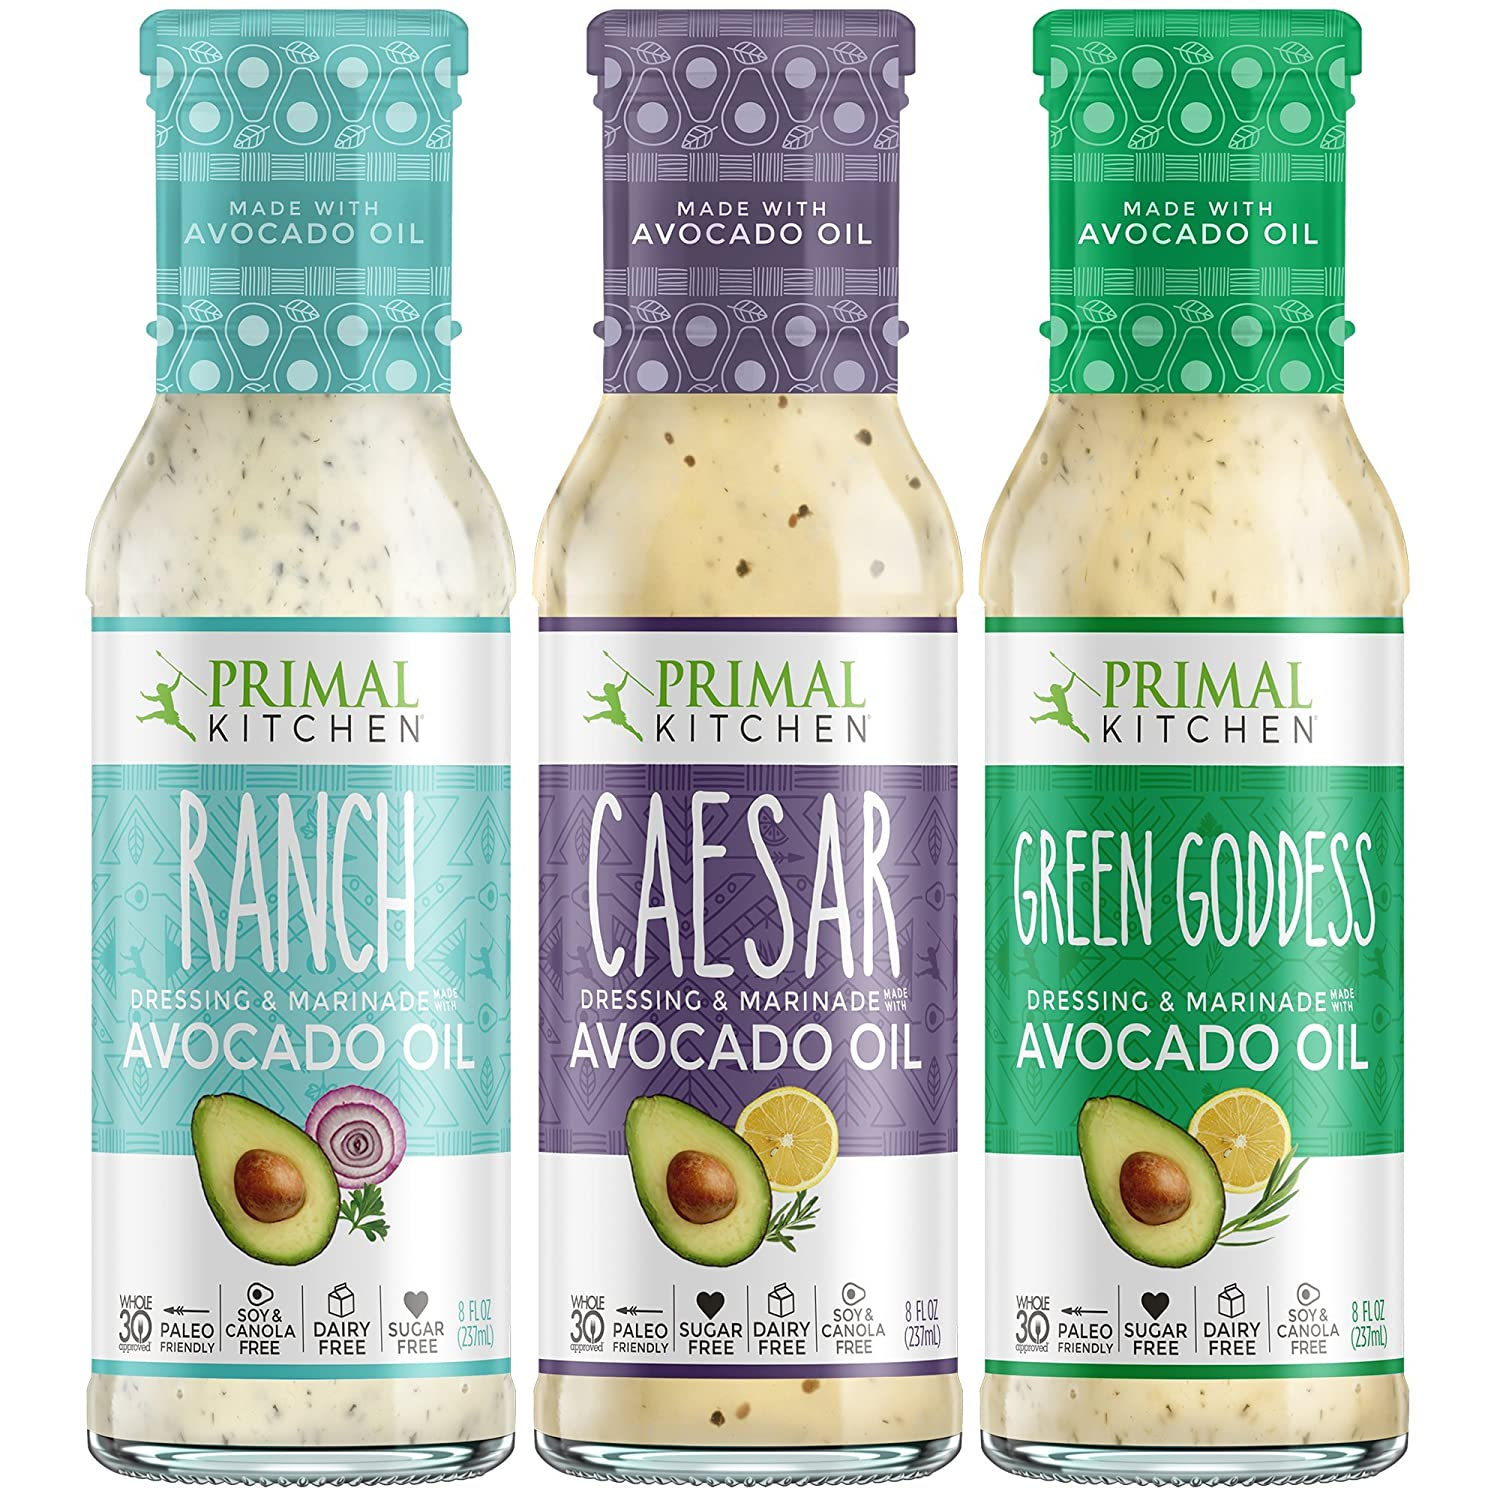 Primal Kitchen Ranch >> Primal Kitchen Whole 30 Avocado Oil Dressing Marinade Ranch Caesar Green Goddess 3 Pack